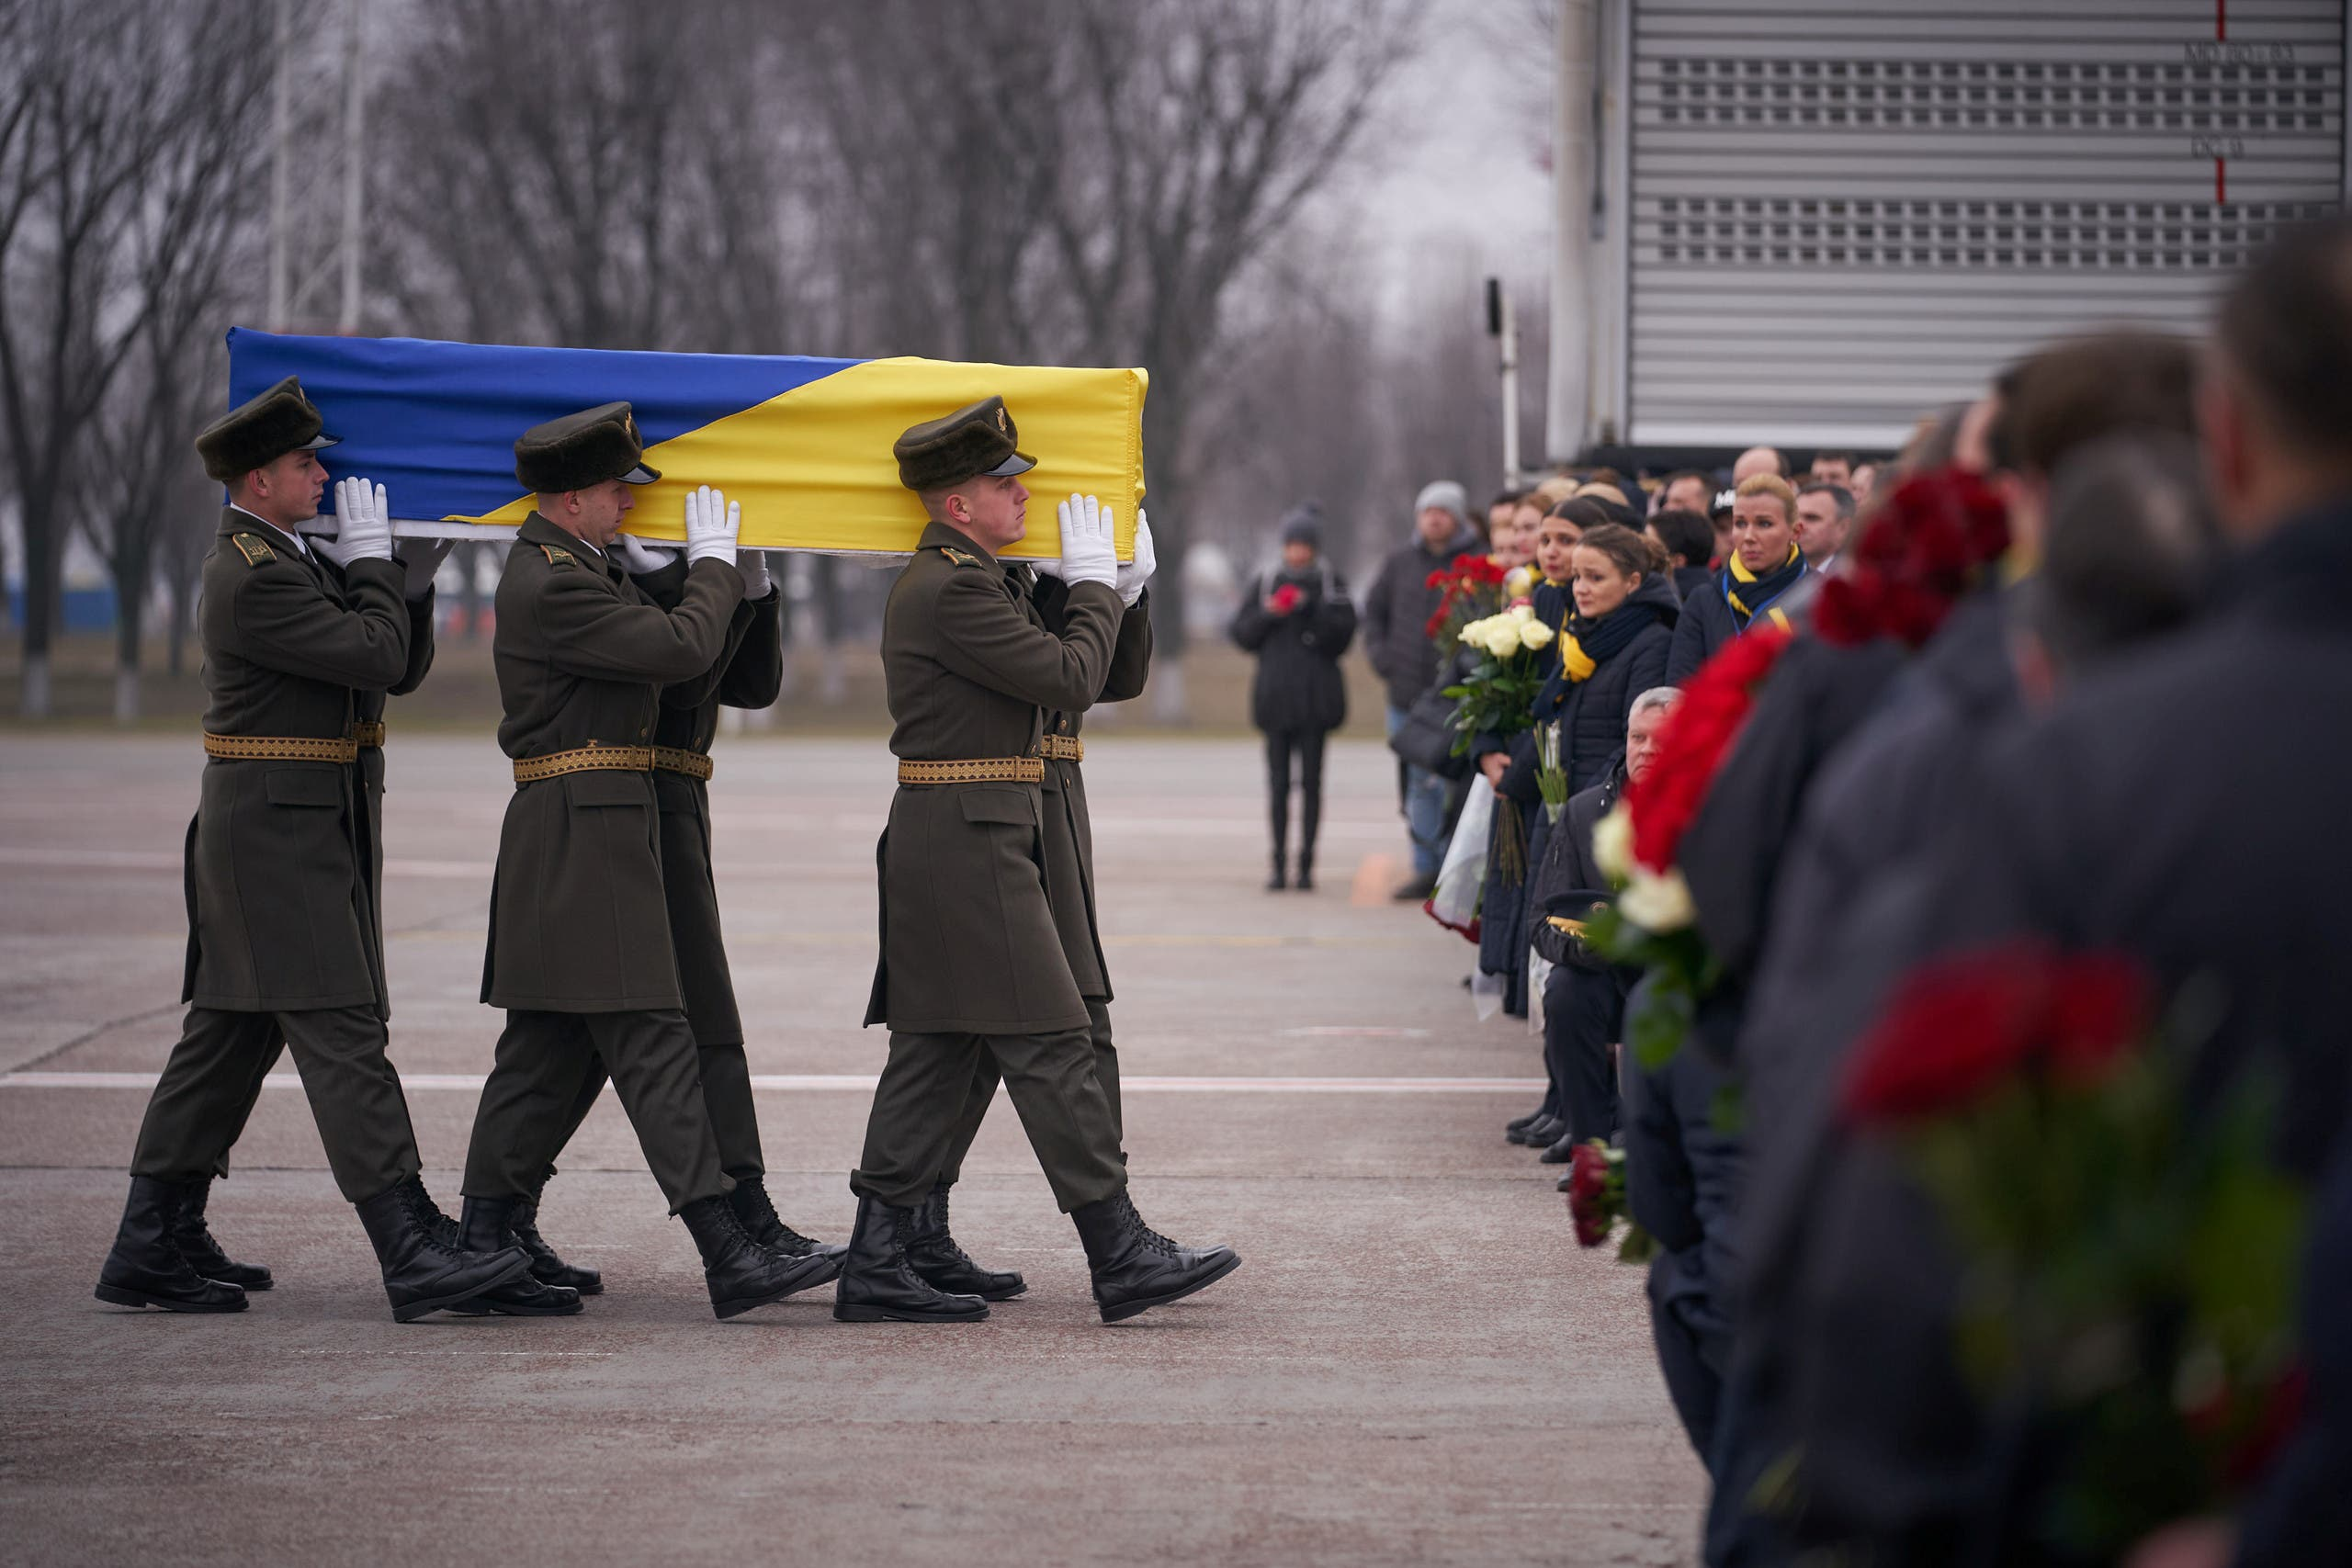 Soldiers carry a coffin of one of the eleven Ukrainian victims of the Ukraine International Airlines flight 752 plane disaster during a memorial ceremony outside Kiev. January 19, 2020. (File photo: Reuters)